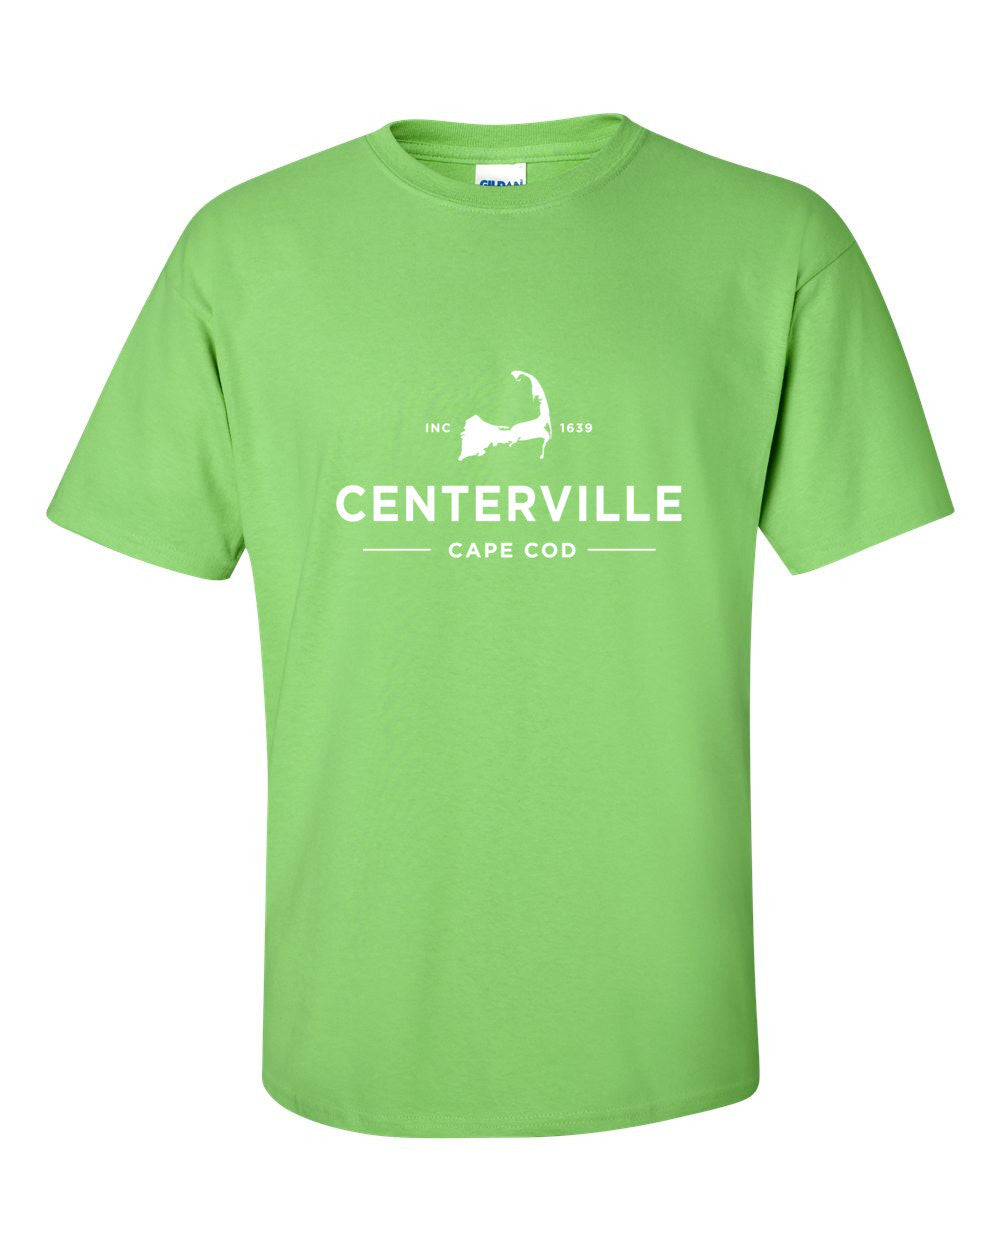 Centerville Cape Cod short sleeve t-shirt